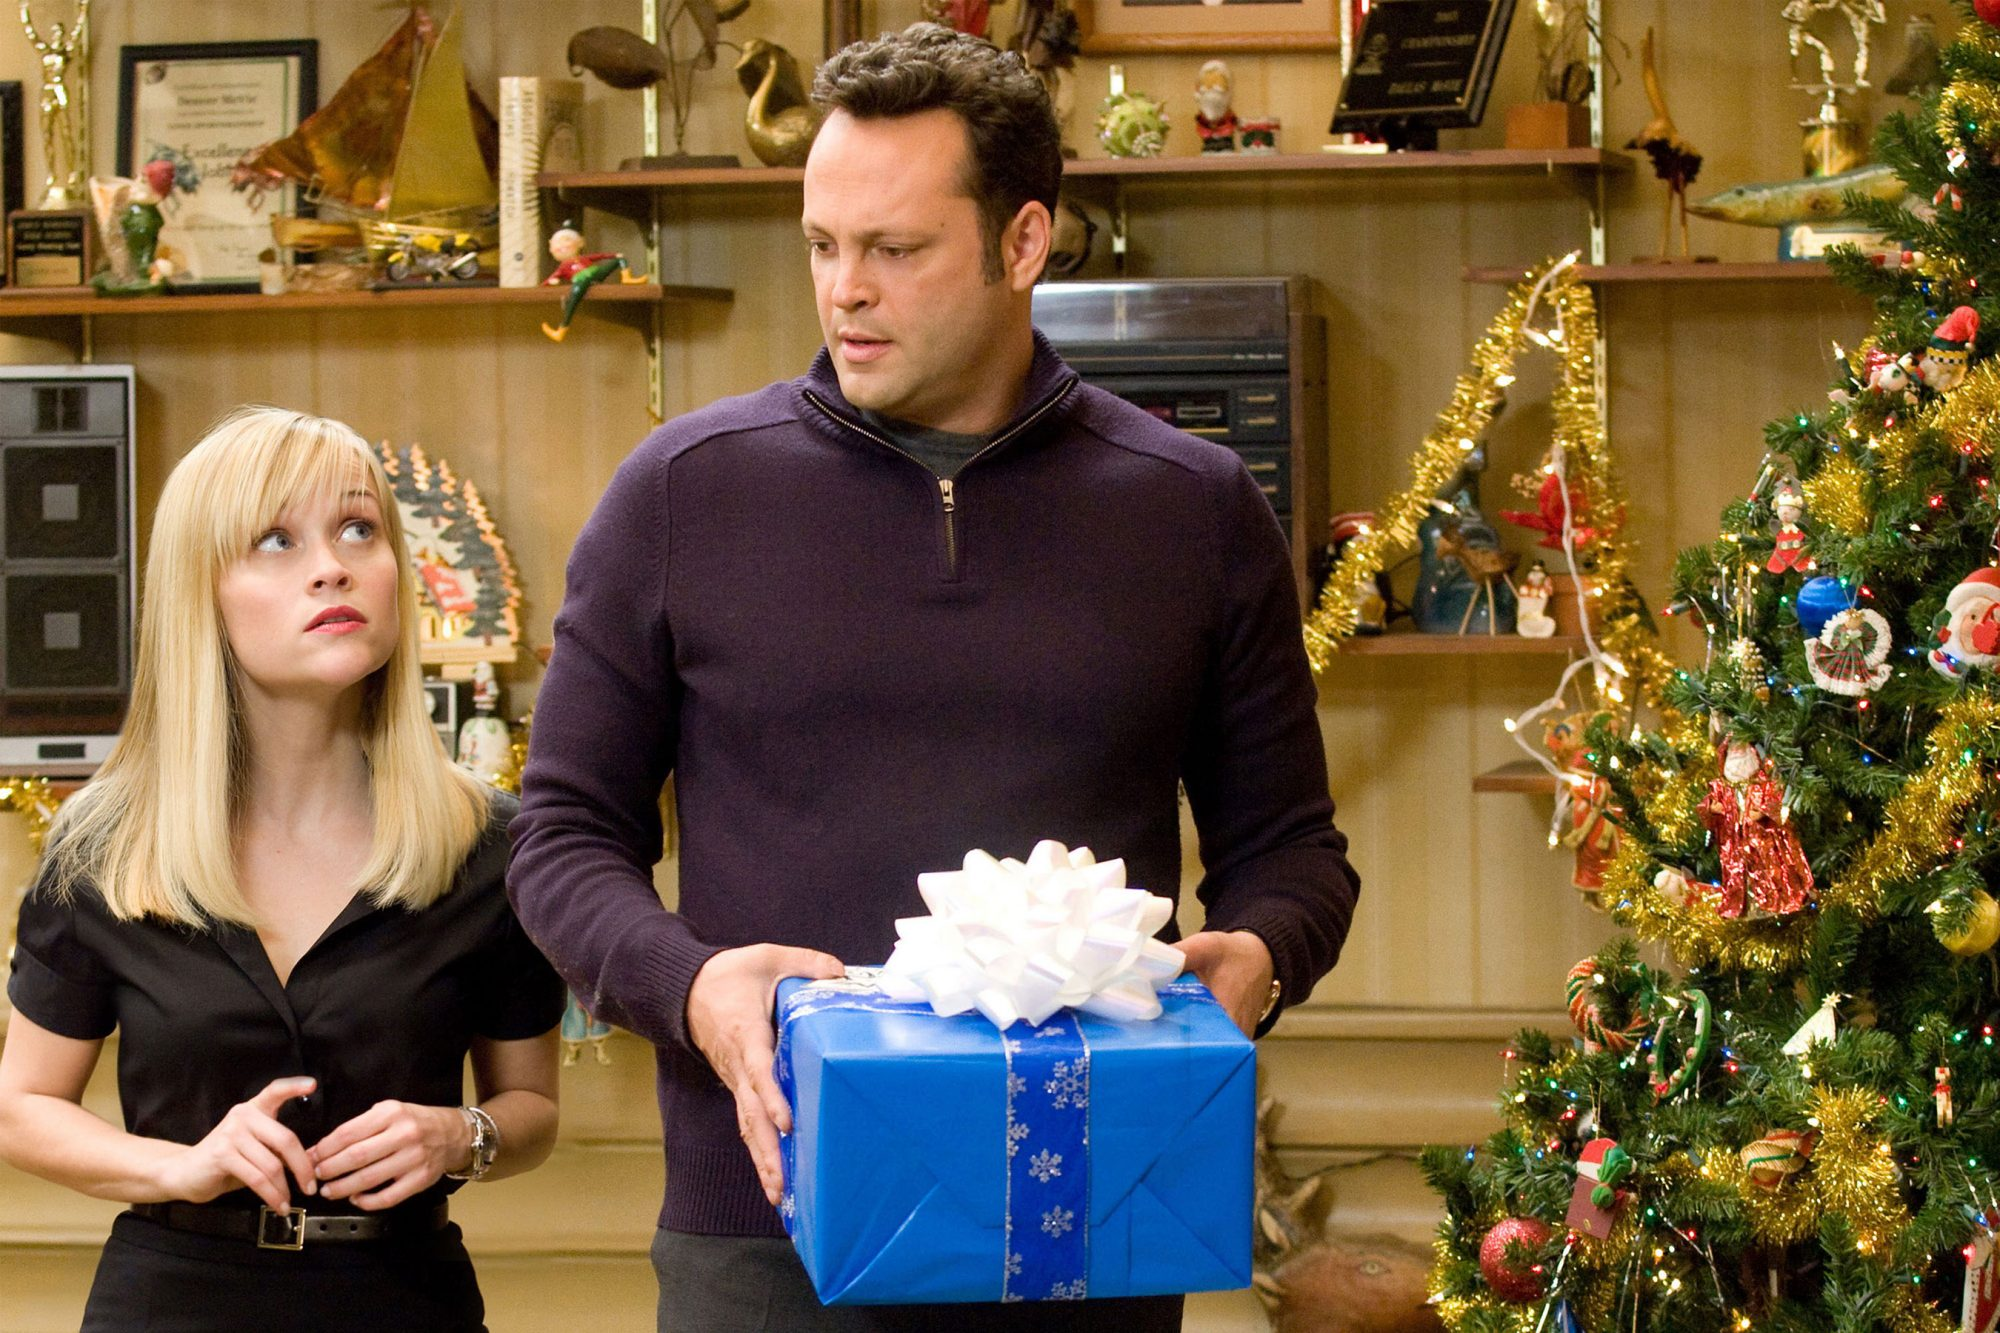 FOUR CHRISTMASES, from left: Reese Witherspoon, Vince Vaughn, 2008. ©New Line Cinema/courtesy Everet